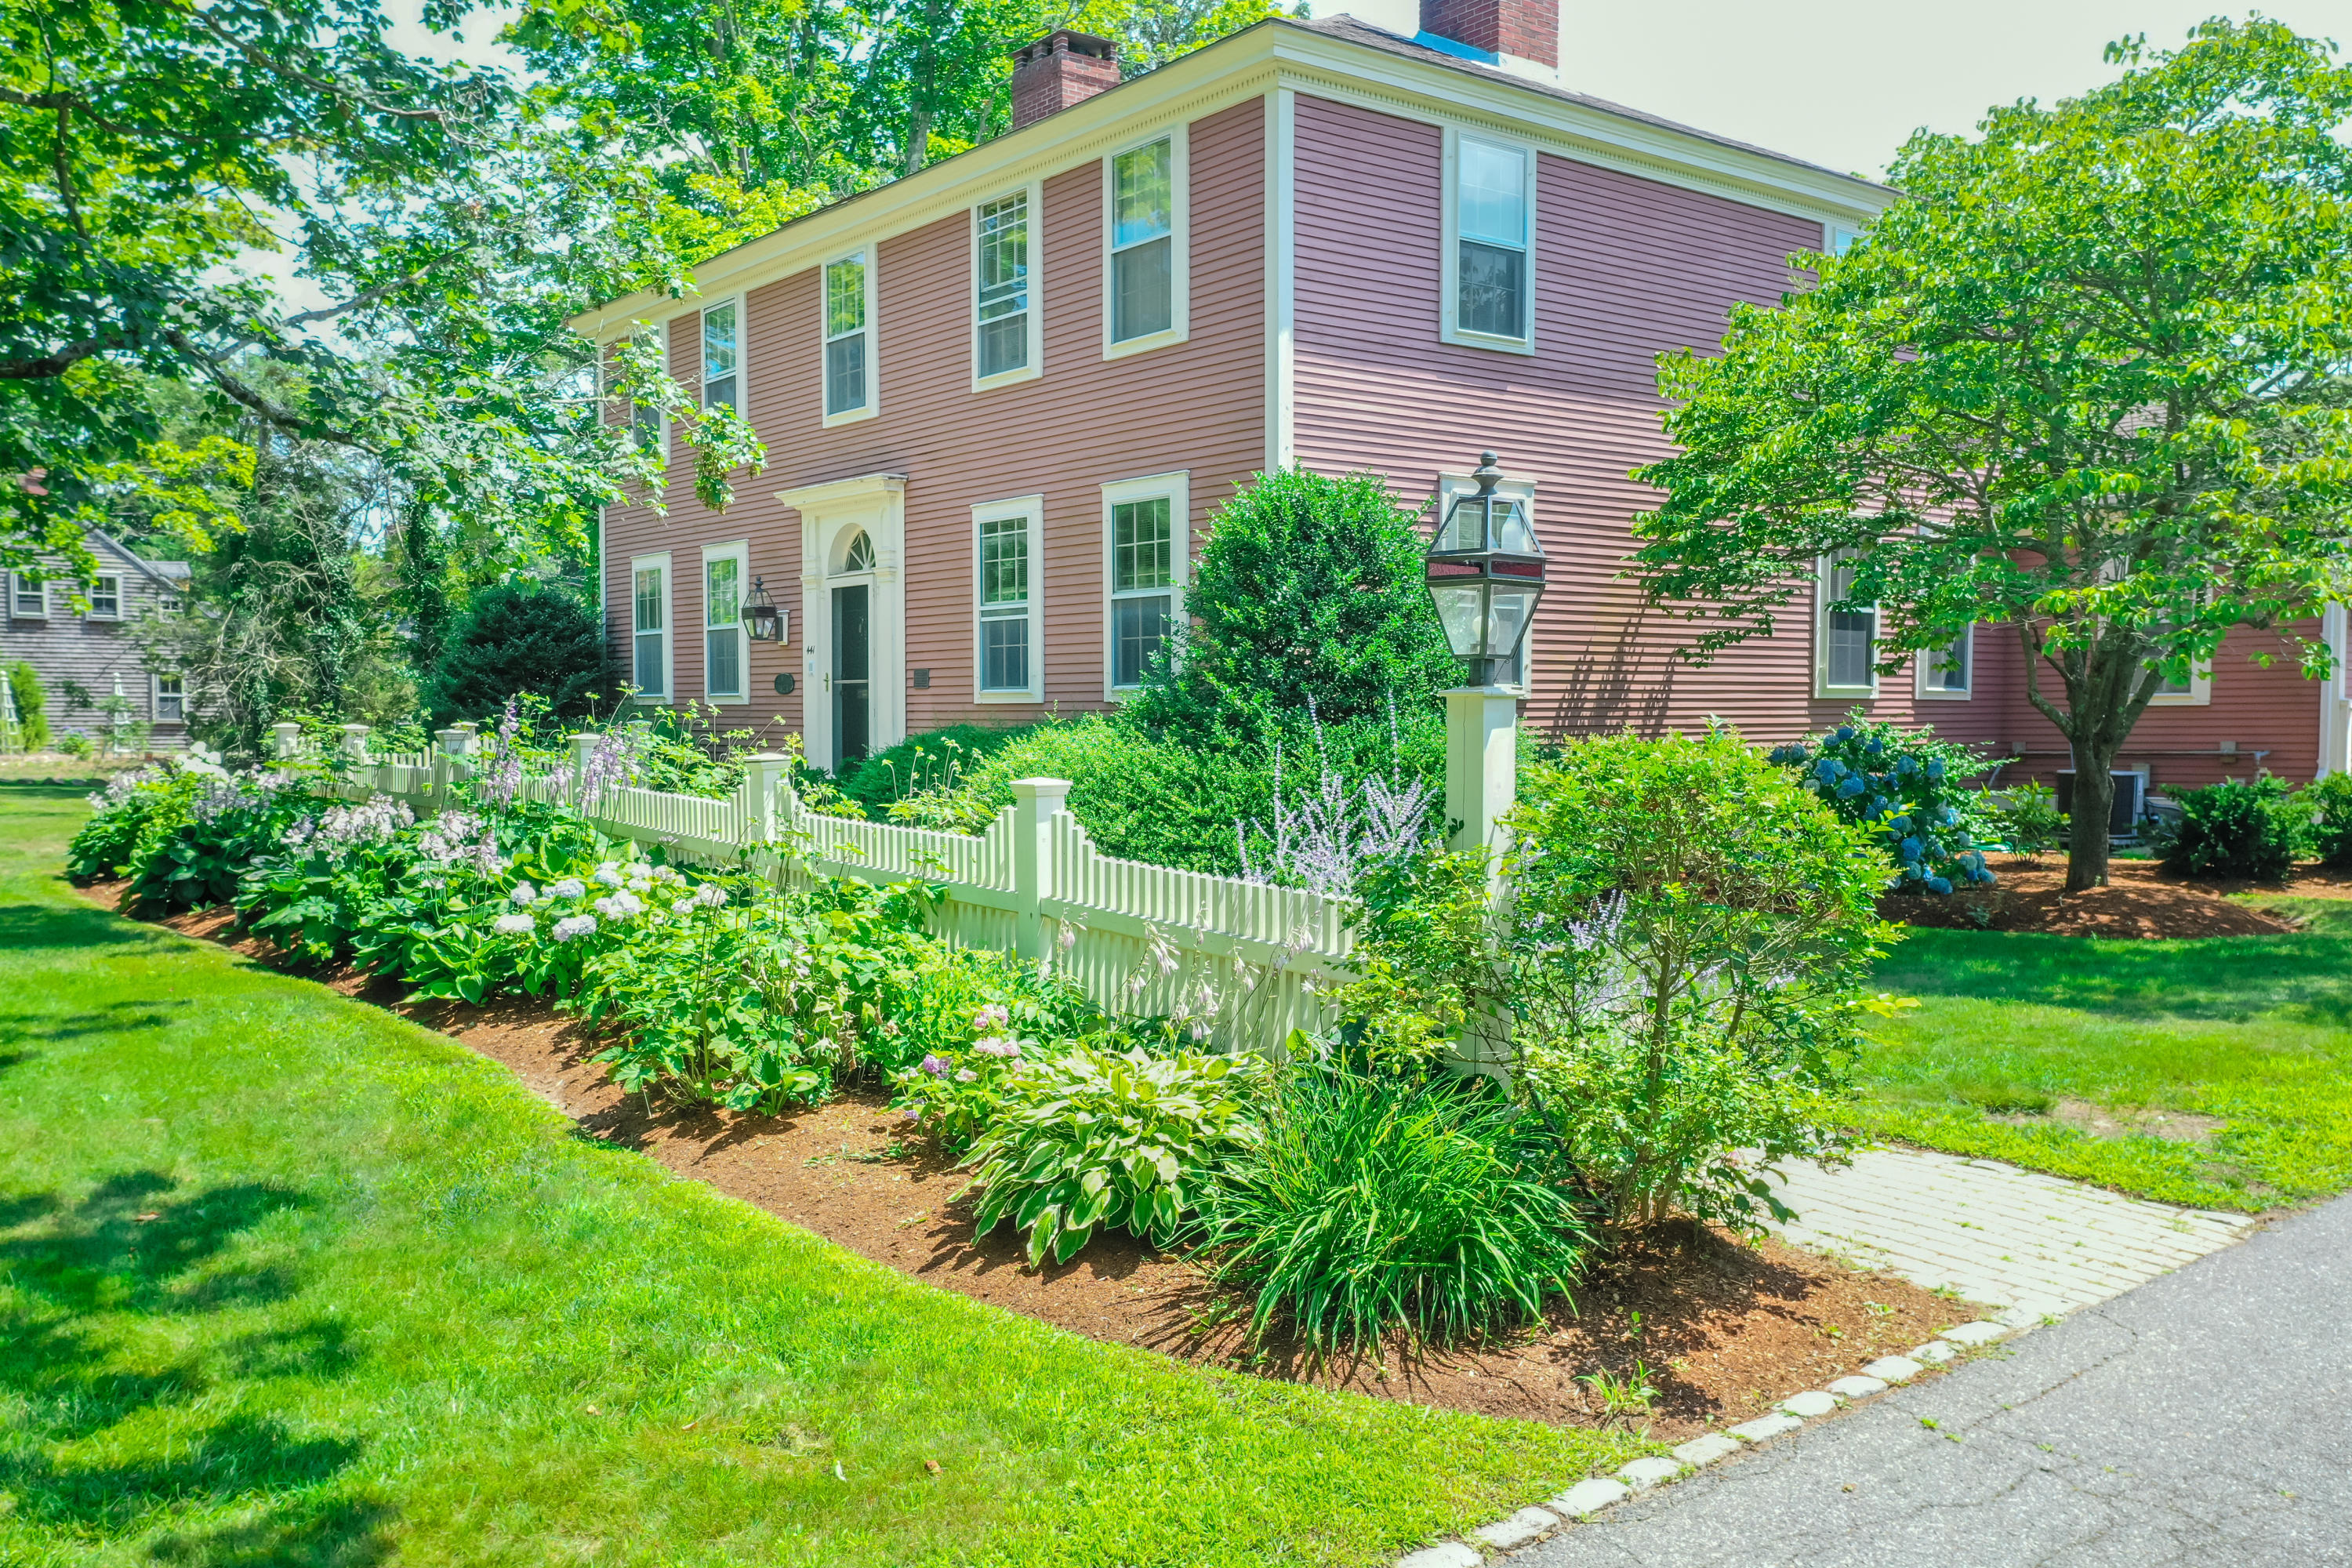 441 Route 6A Yarmouth Port MA, 02675 details